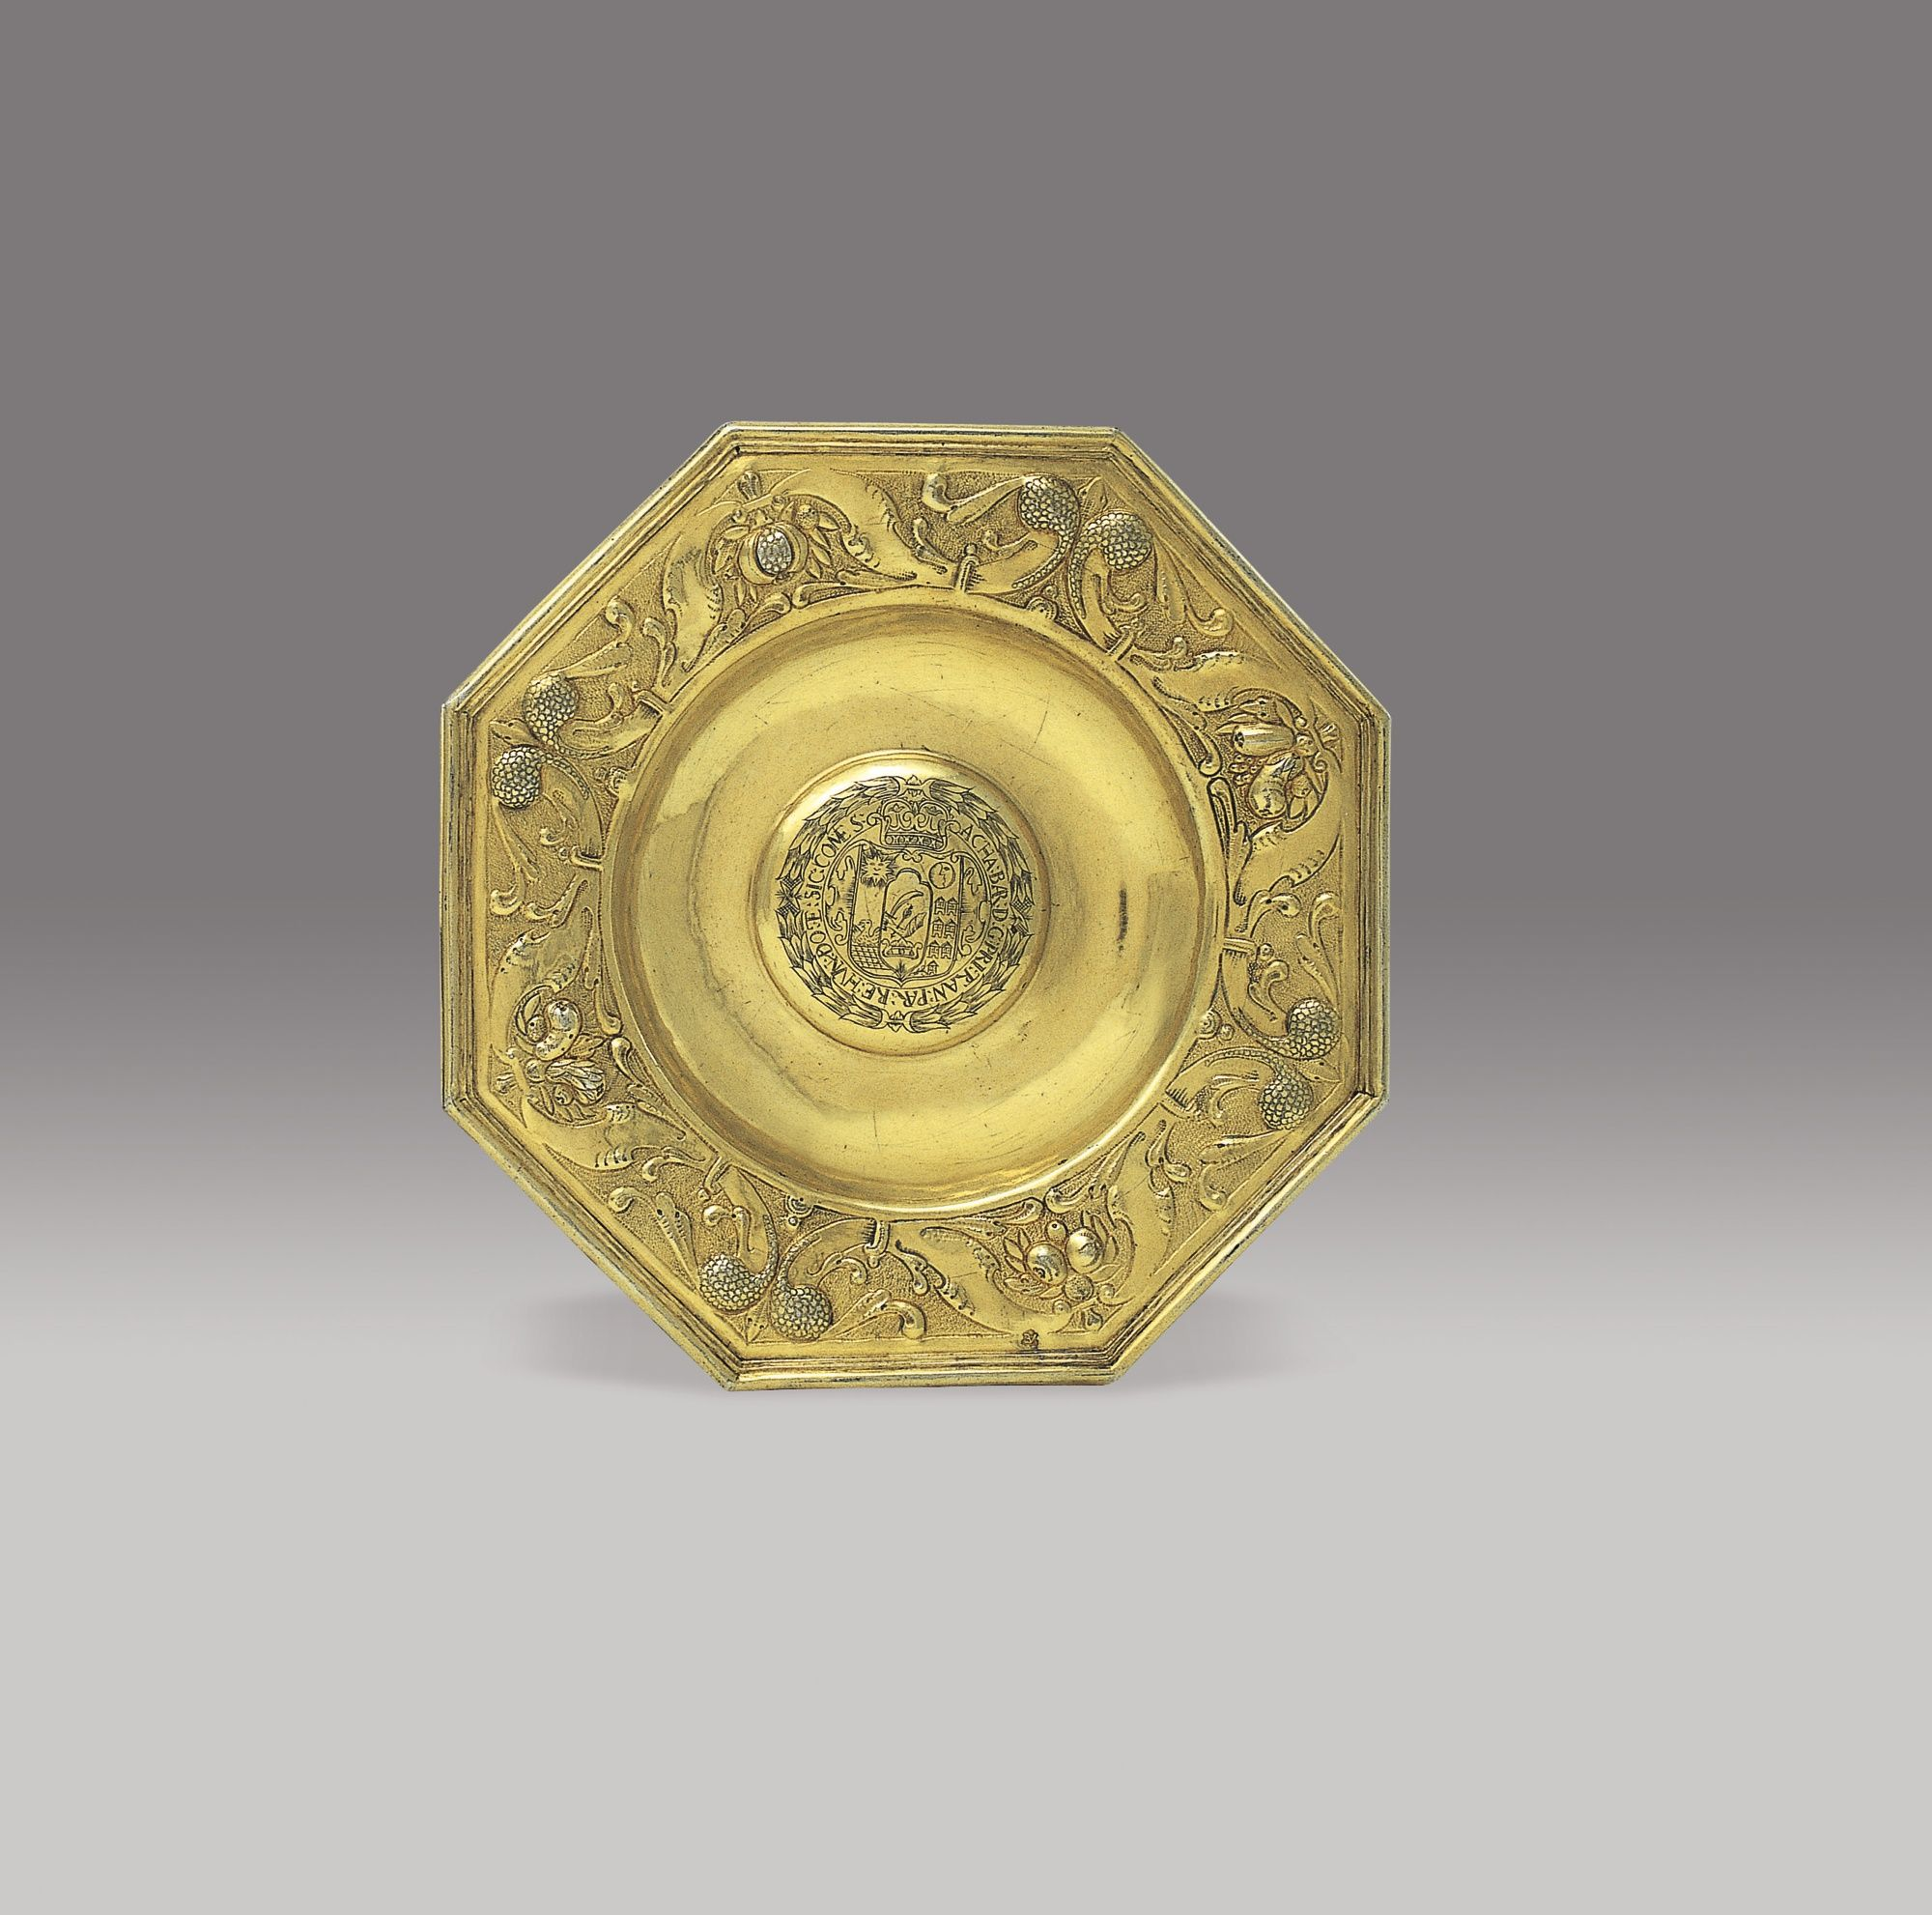 Andreas Eckhardt andreas eckhardt silver gilt octagonal dish the central